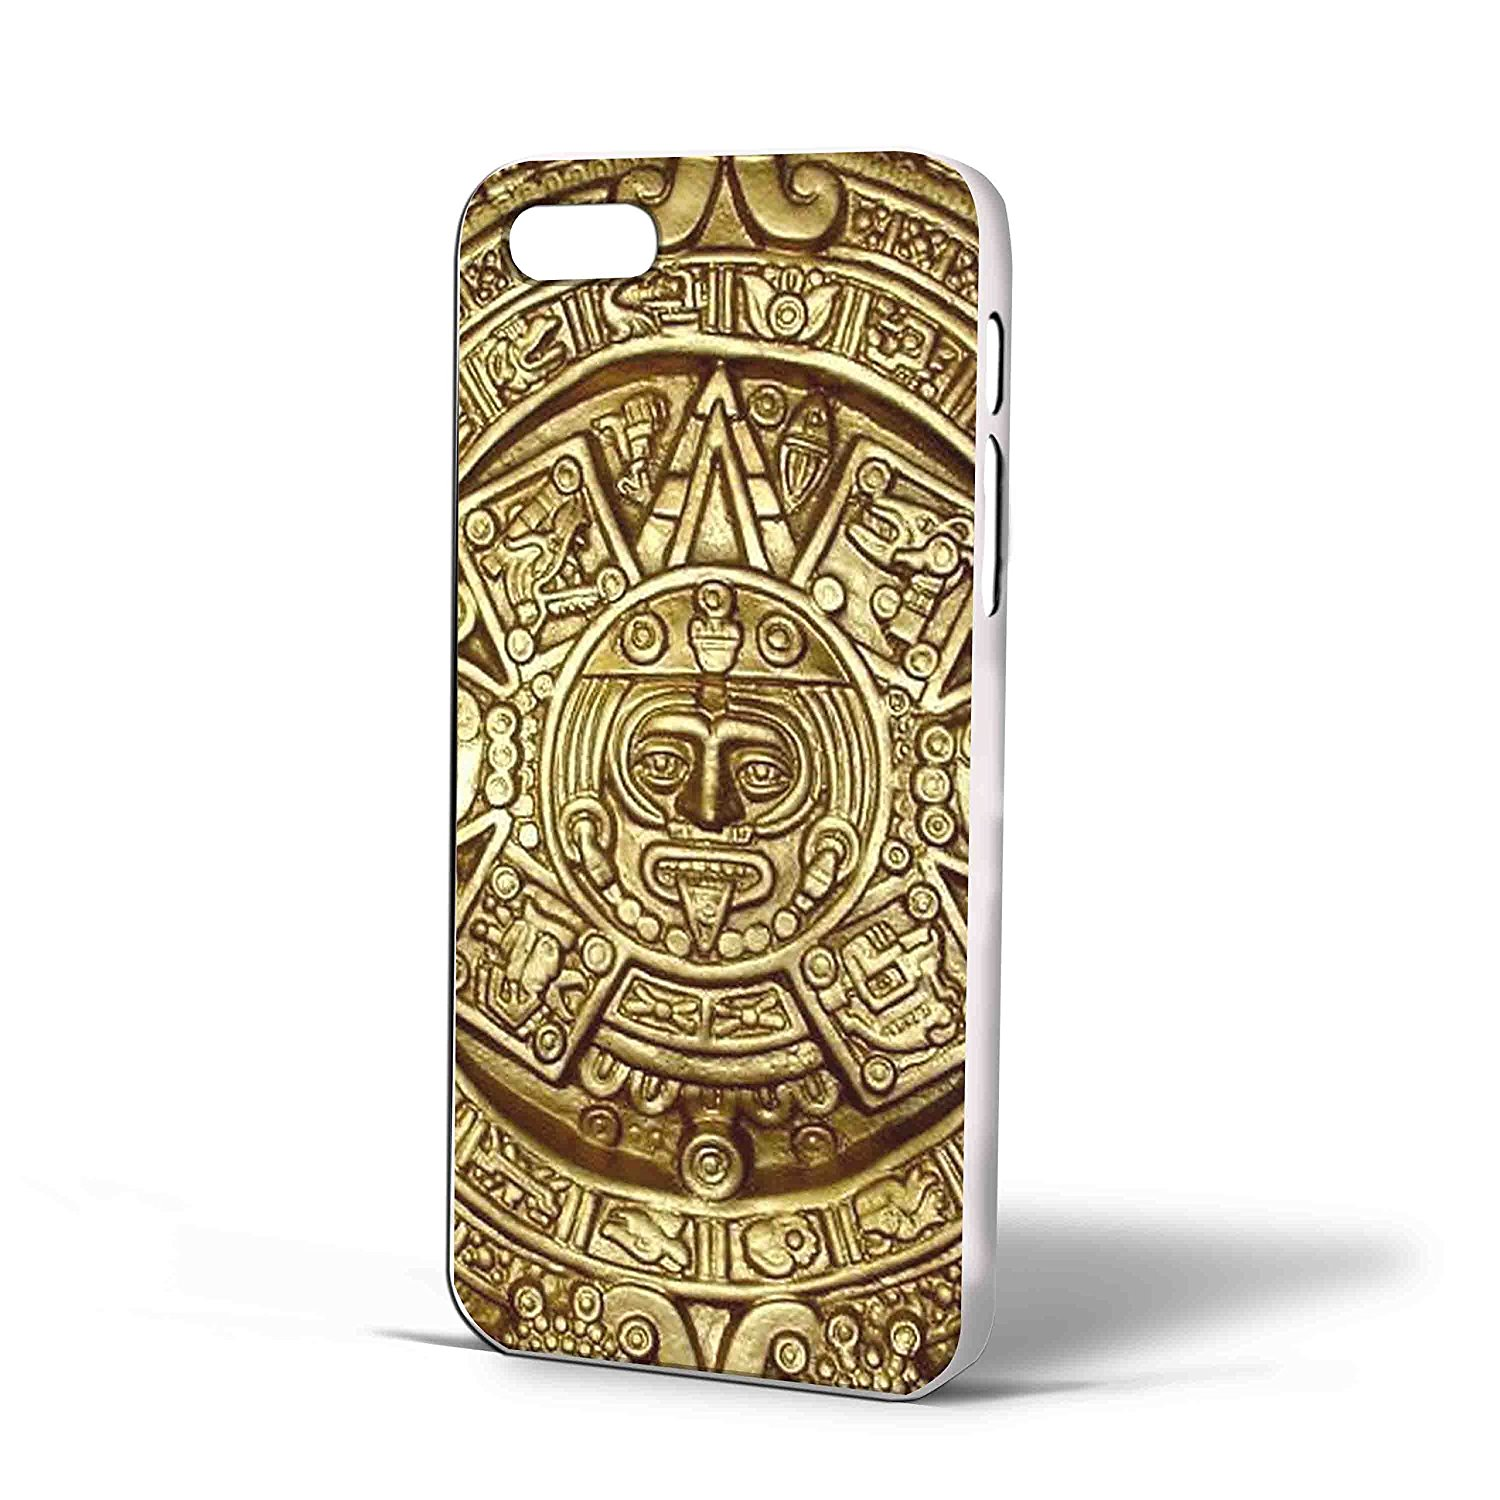 Ganma Aztec Mayan Calendar Gold Case For iPhone Case (Case For iPhone 5/5s White)